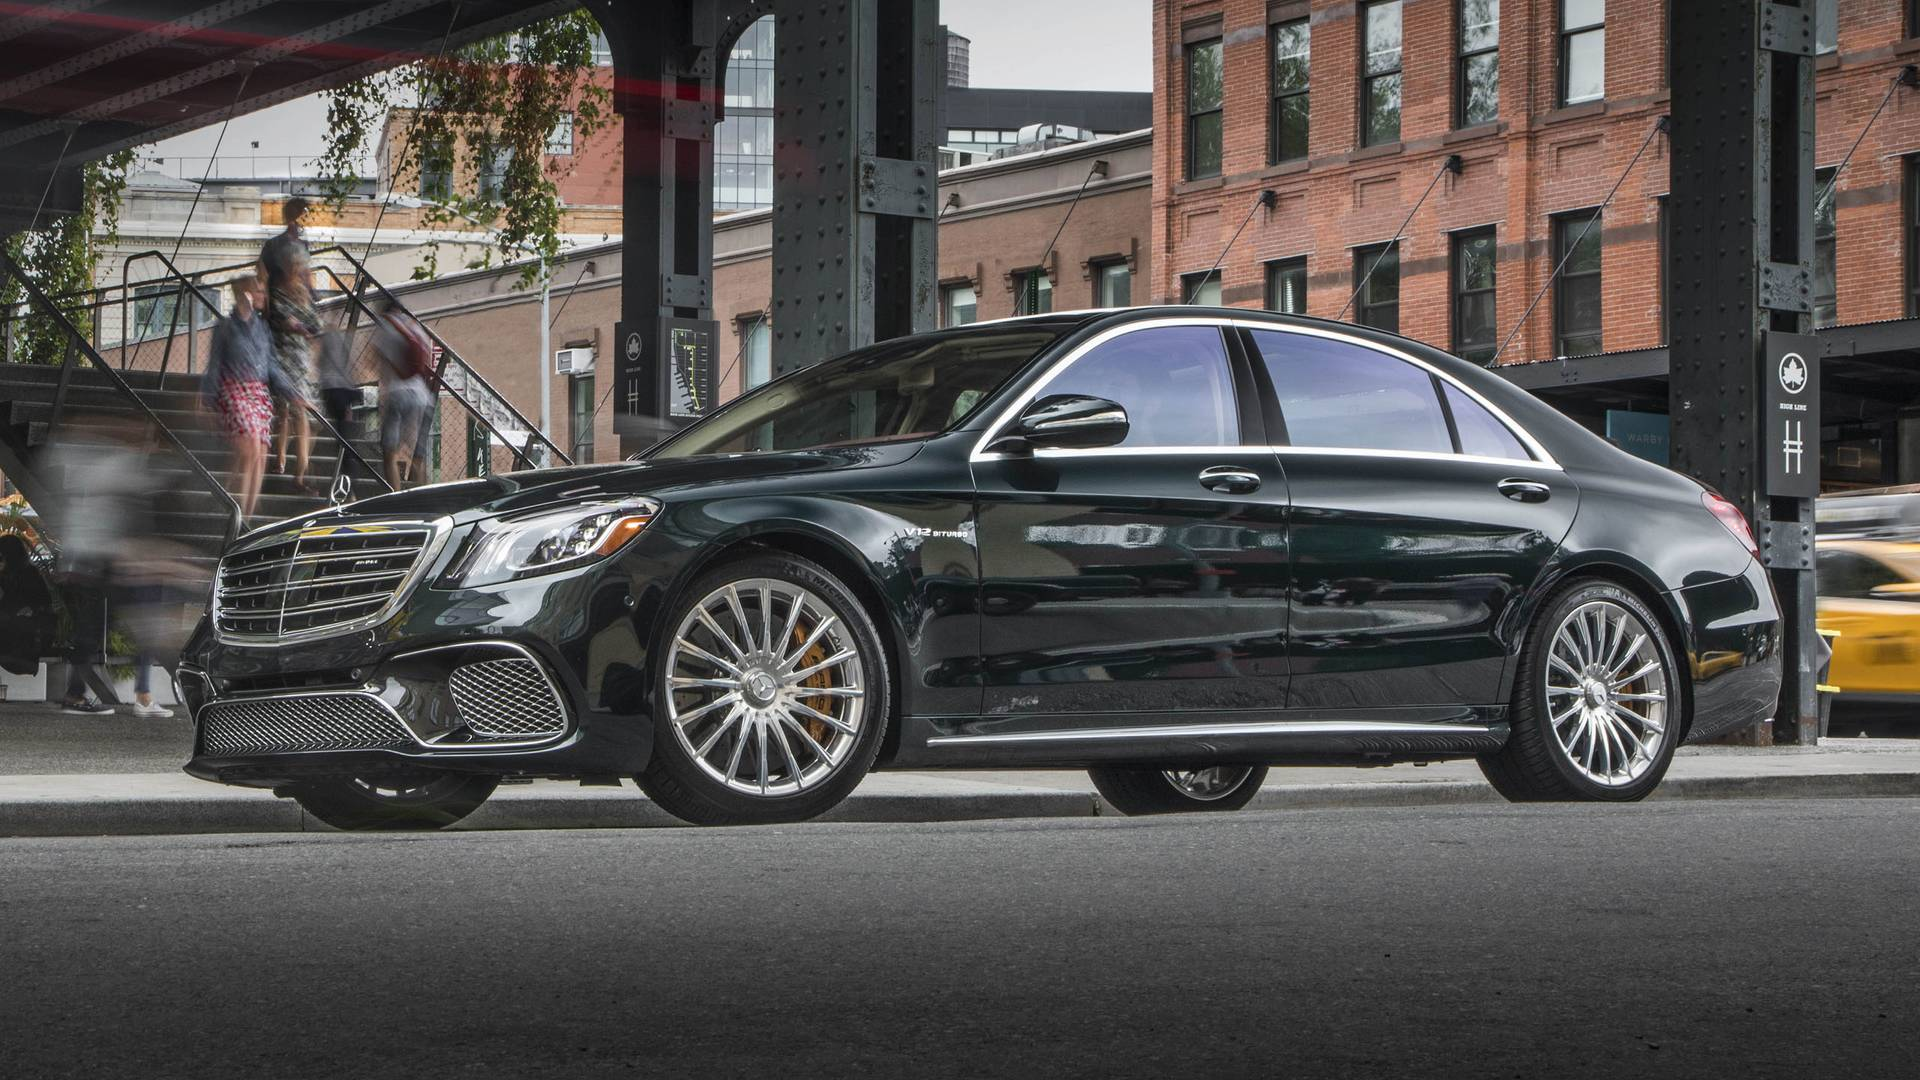 https://icdn-2.motor1.com/images/mgl/bWbyl/s1/2018-mercedes-amg-s65-review.jpg